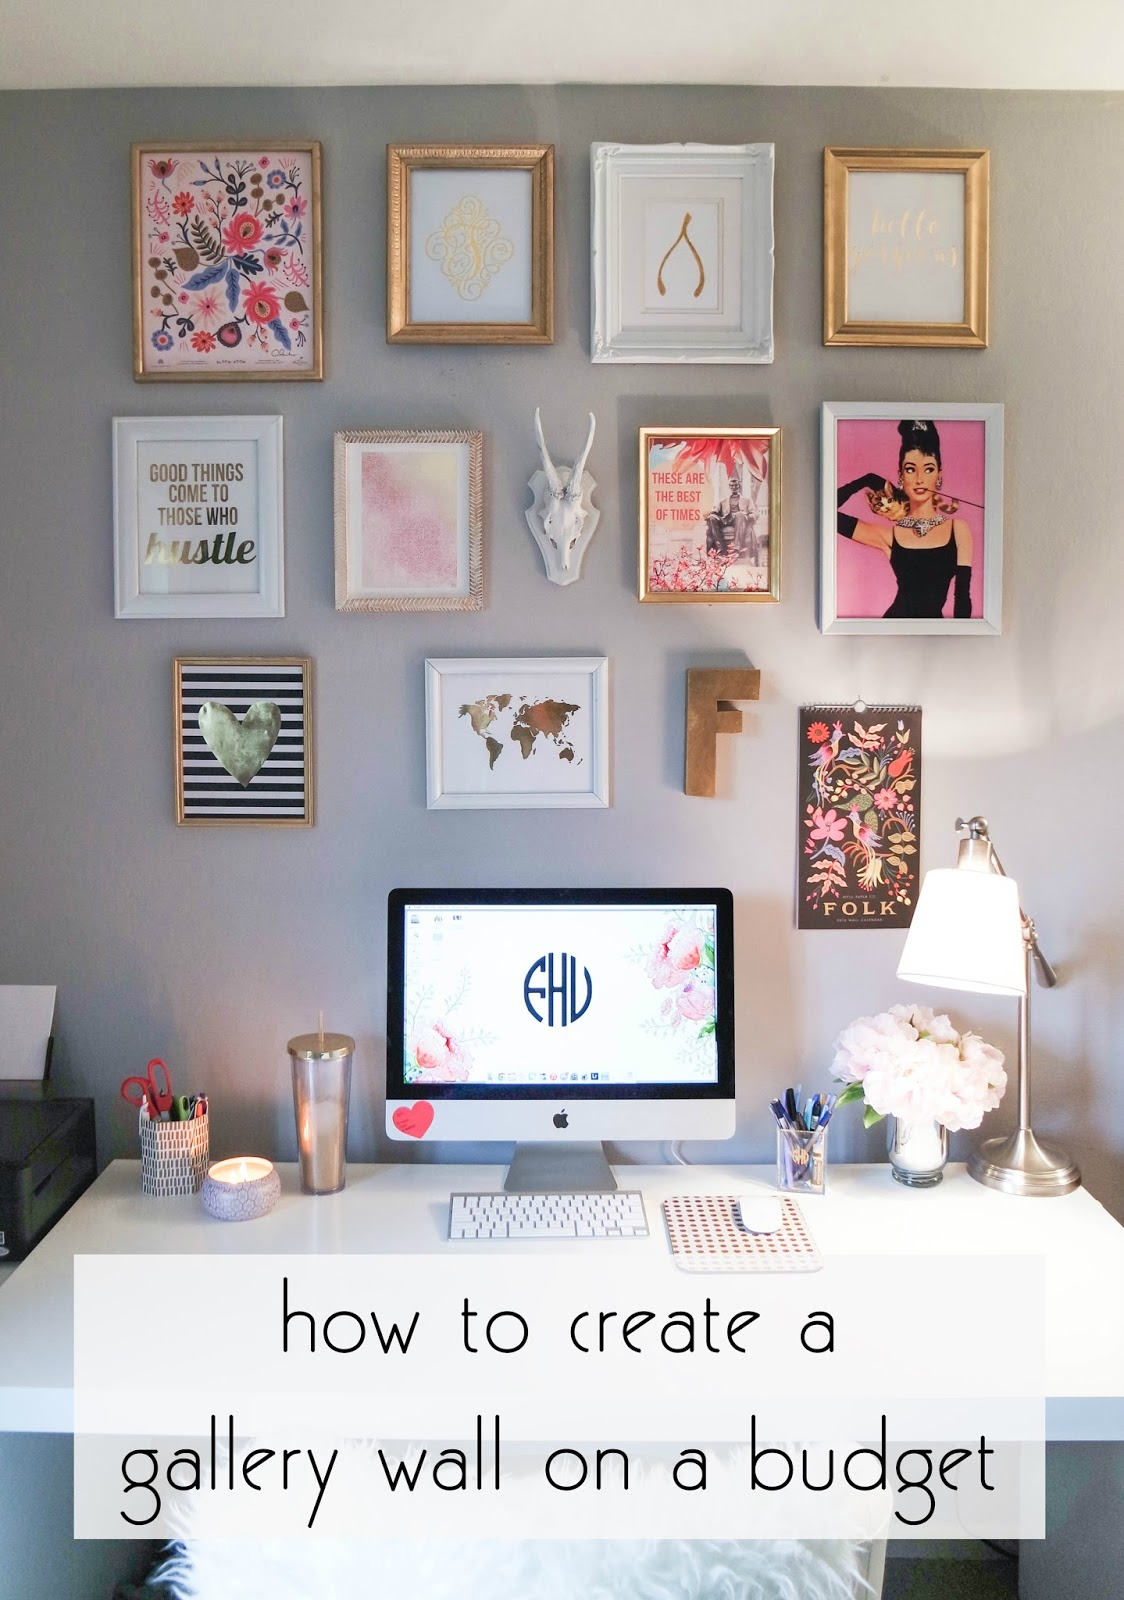 Franish Creating A Gallery Wall On A Budget: how can i decorate my house